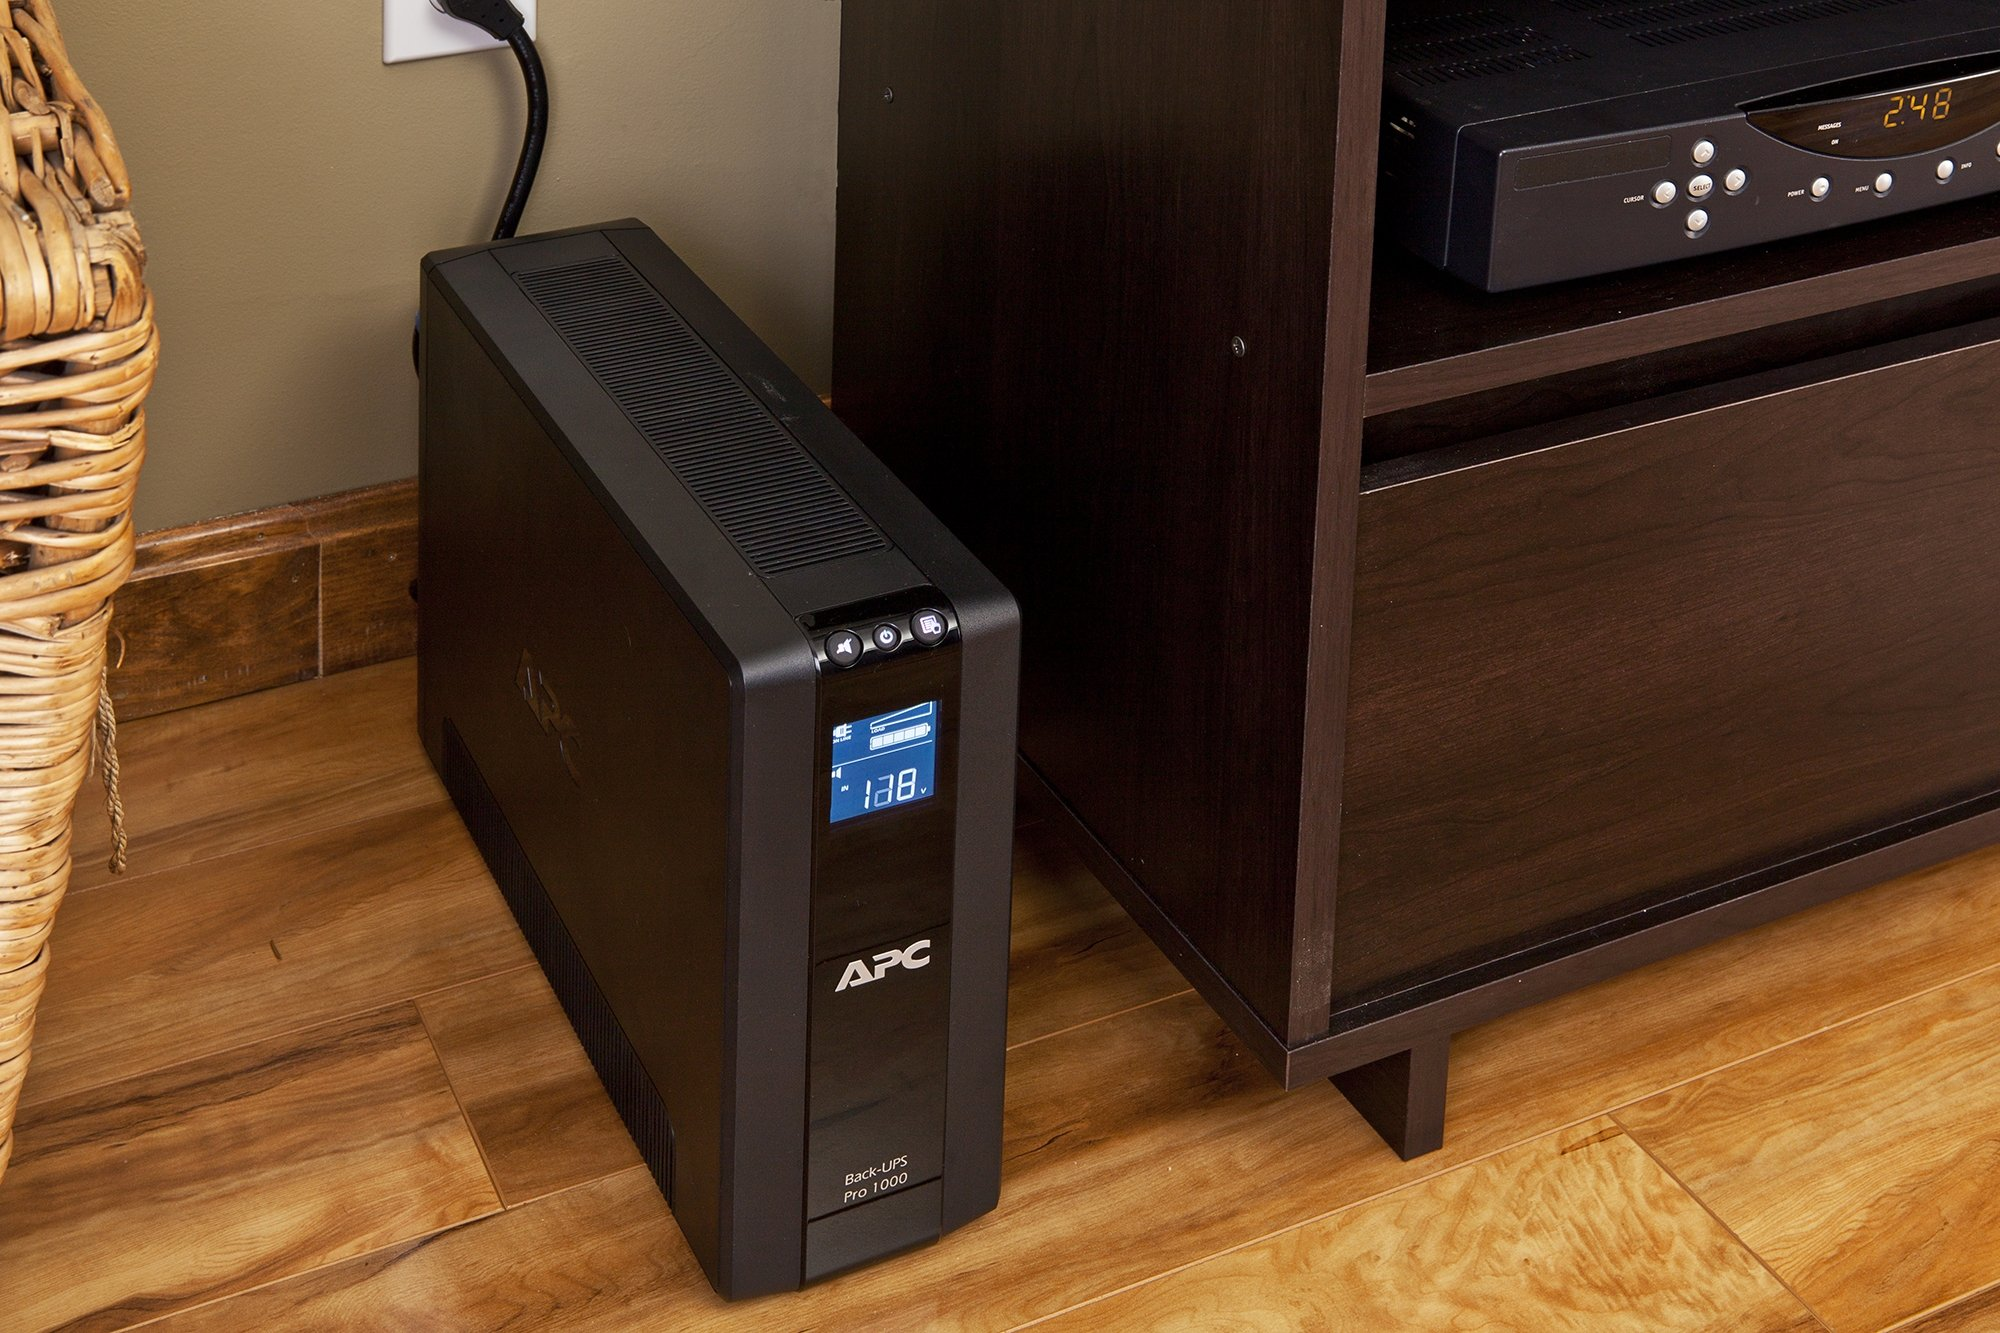 APC Back-UPS Pro 1000VA UPS Battery Backup & Surge Protector (BR1000G) by APC (Image #5)